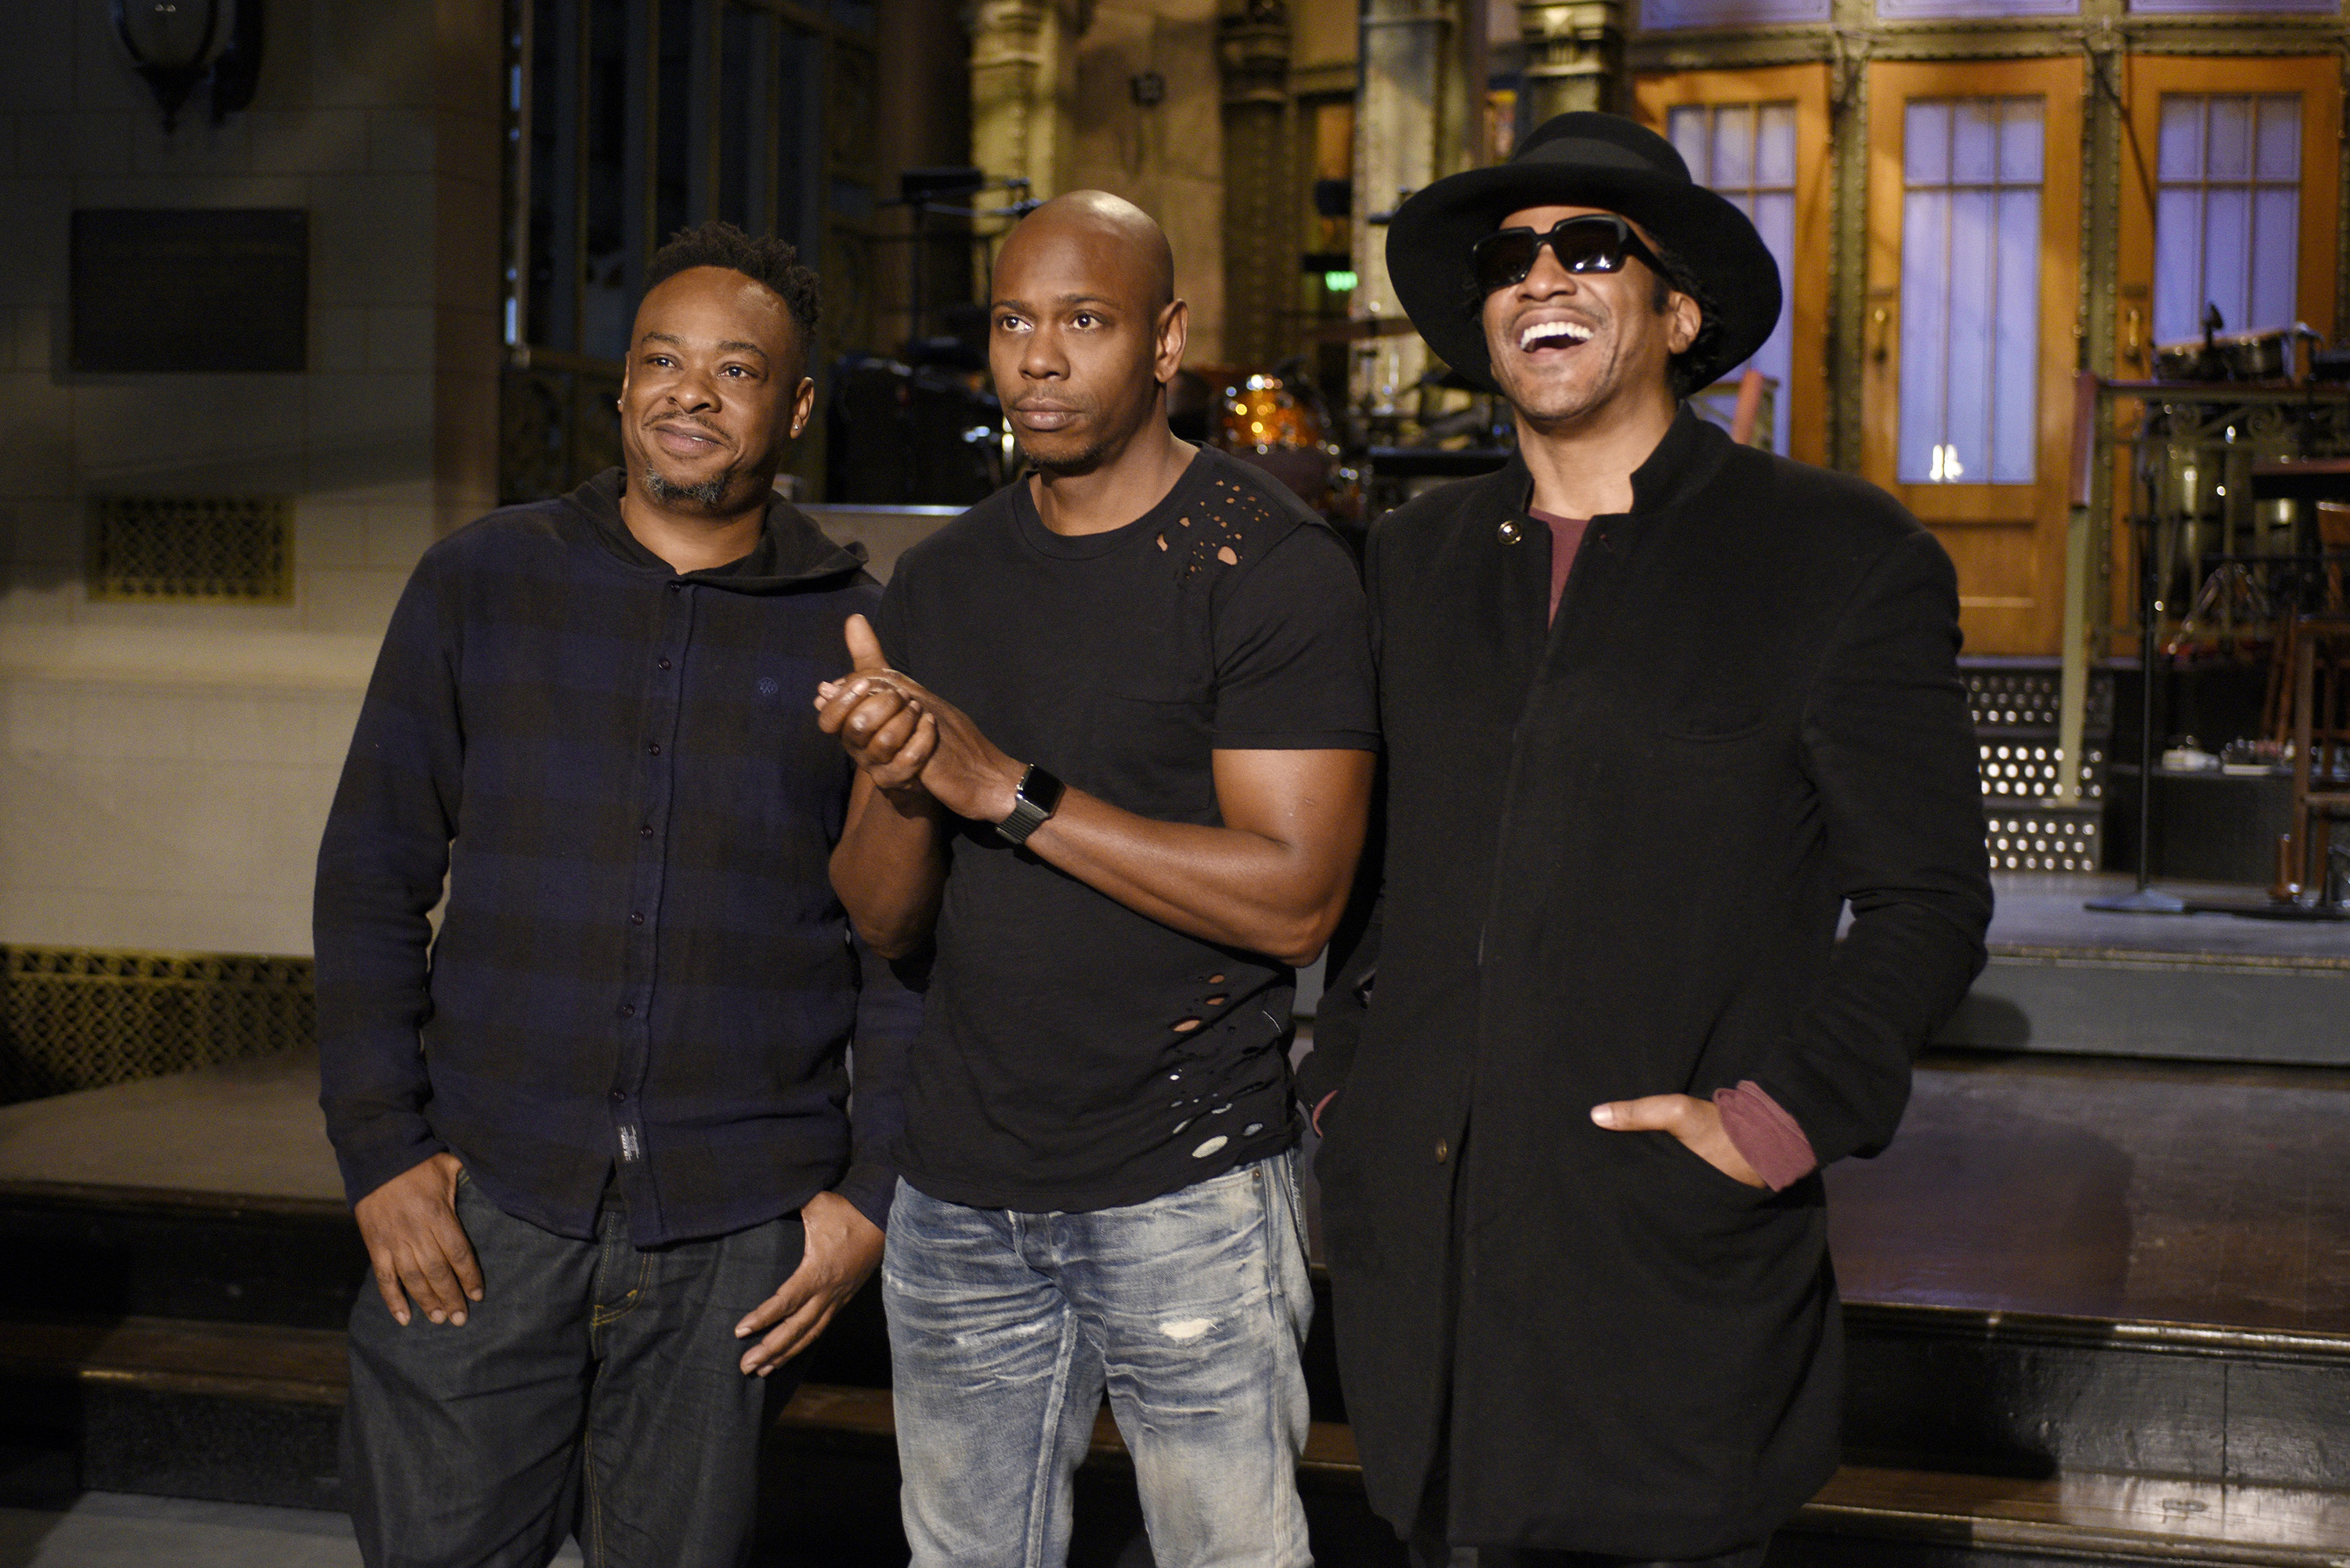 Dave Chappelle To Host 2020 Post Election Saturday Night Live